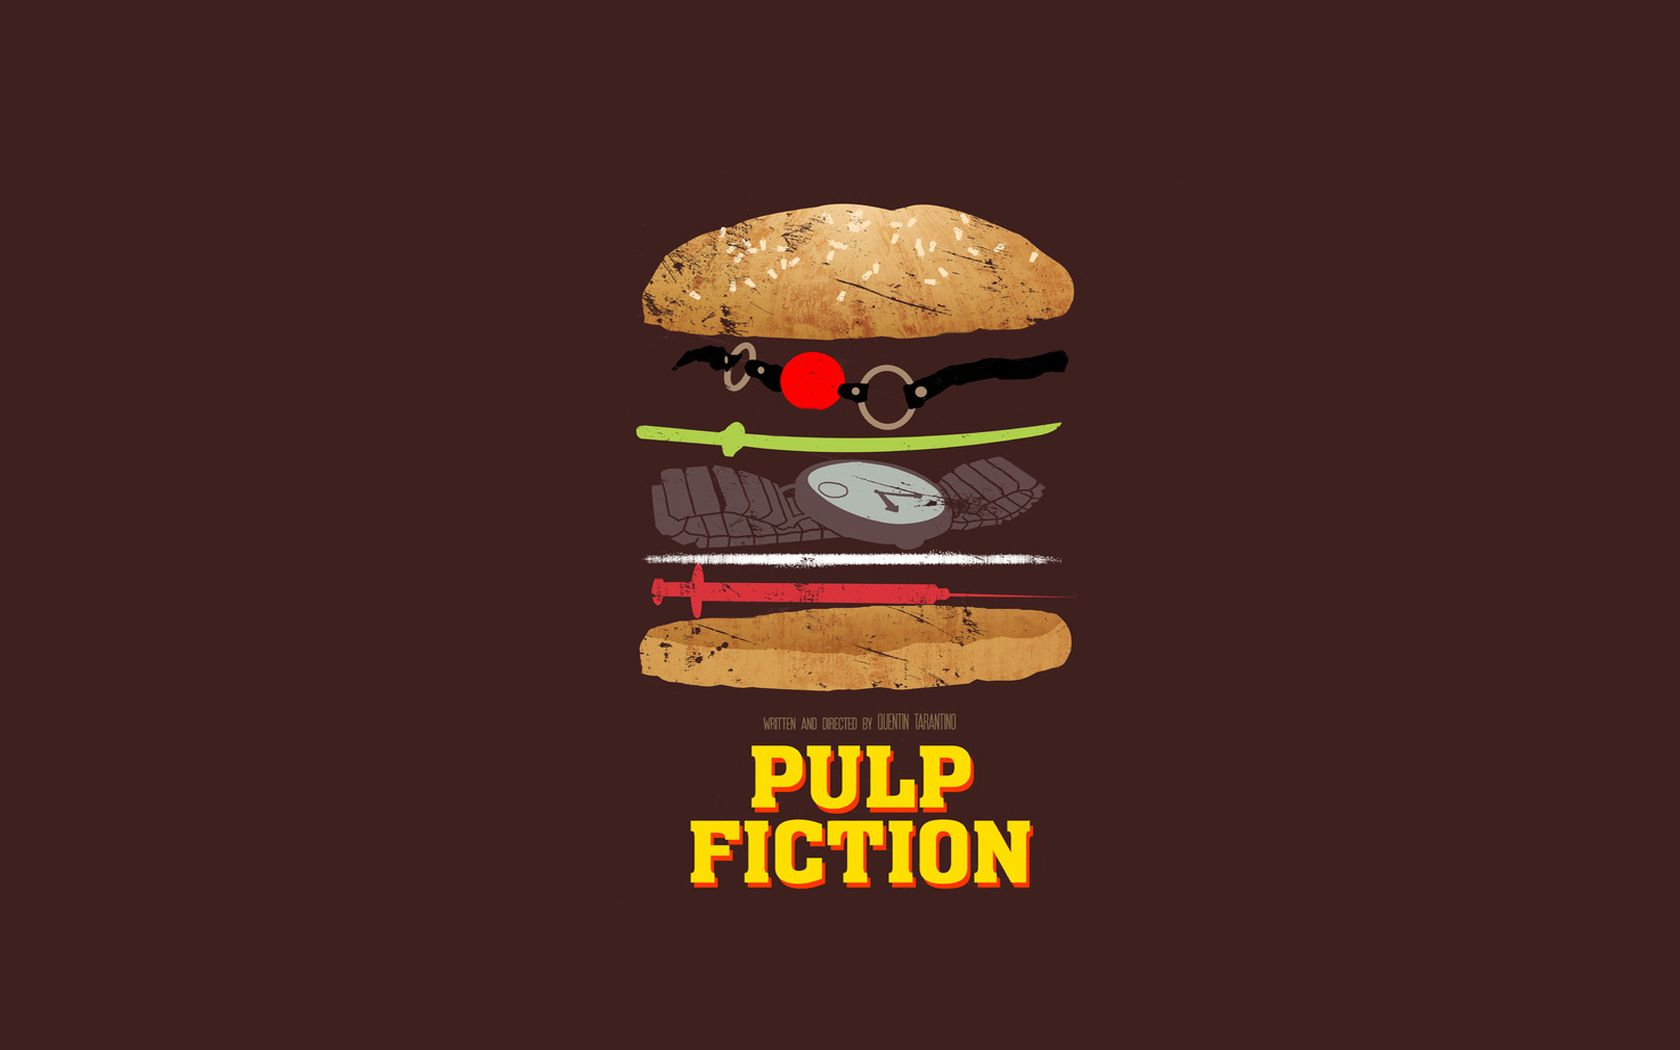 Mobile HD Source · Star Wars Pulp Fiction Wallpaper 57 images